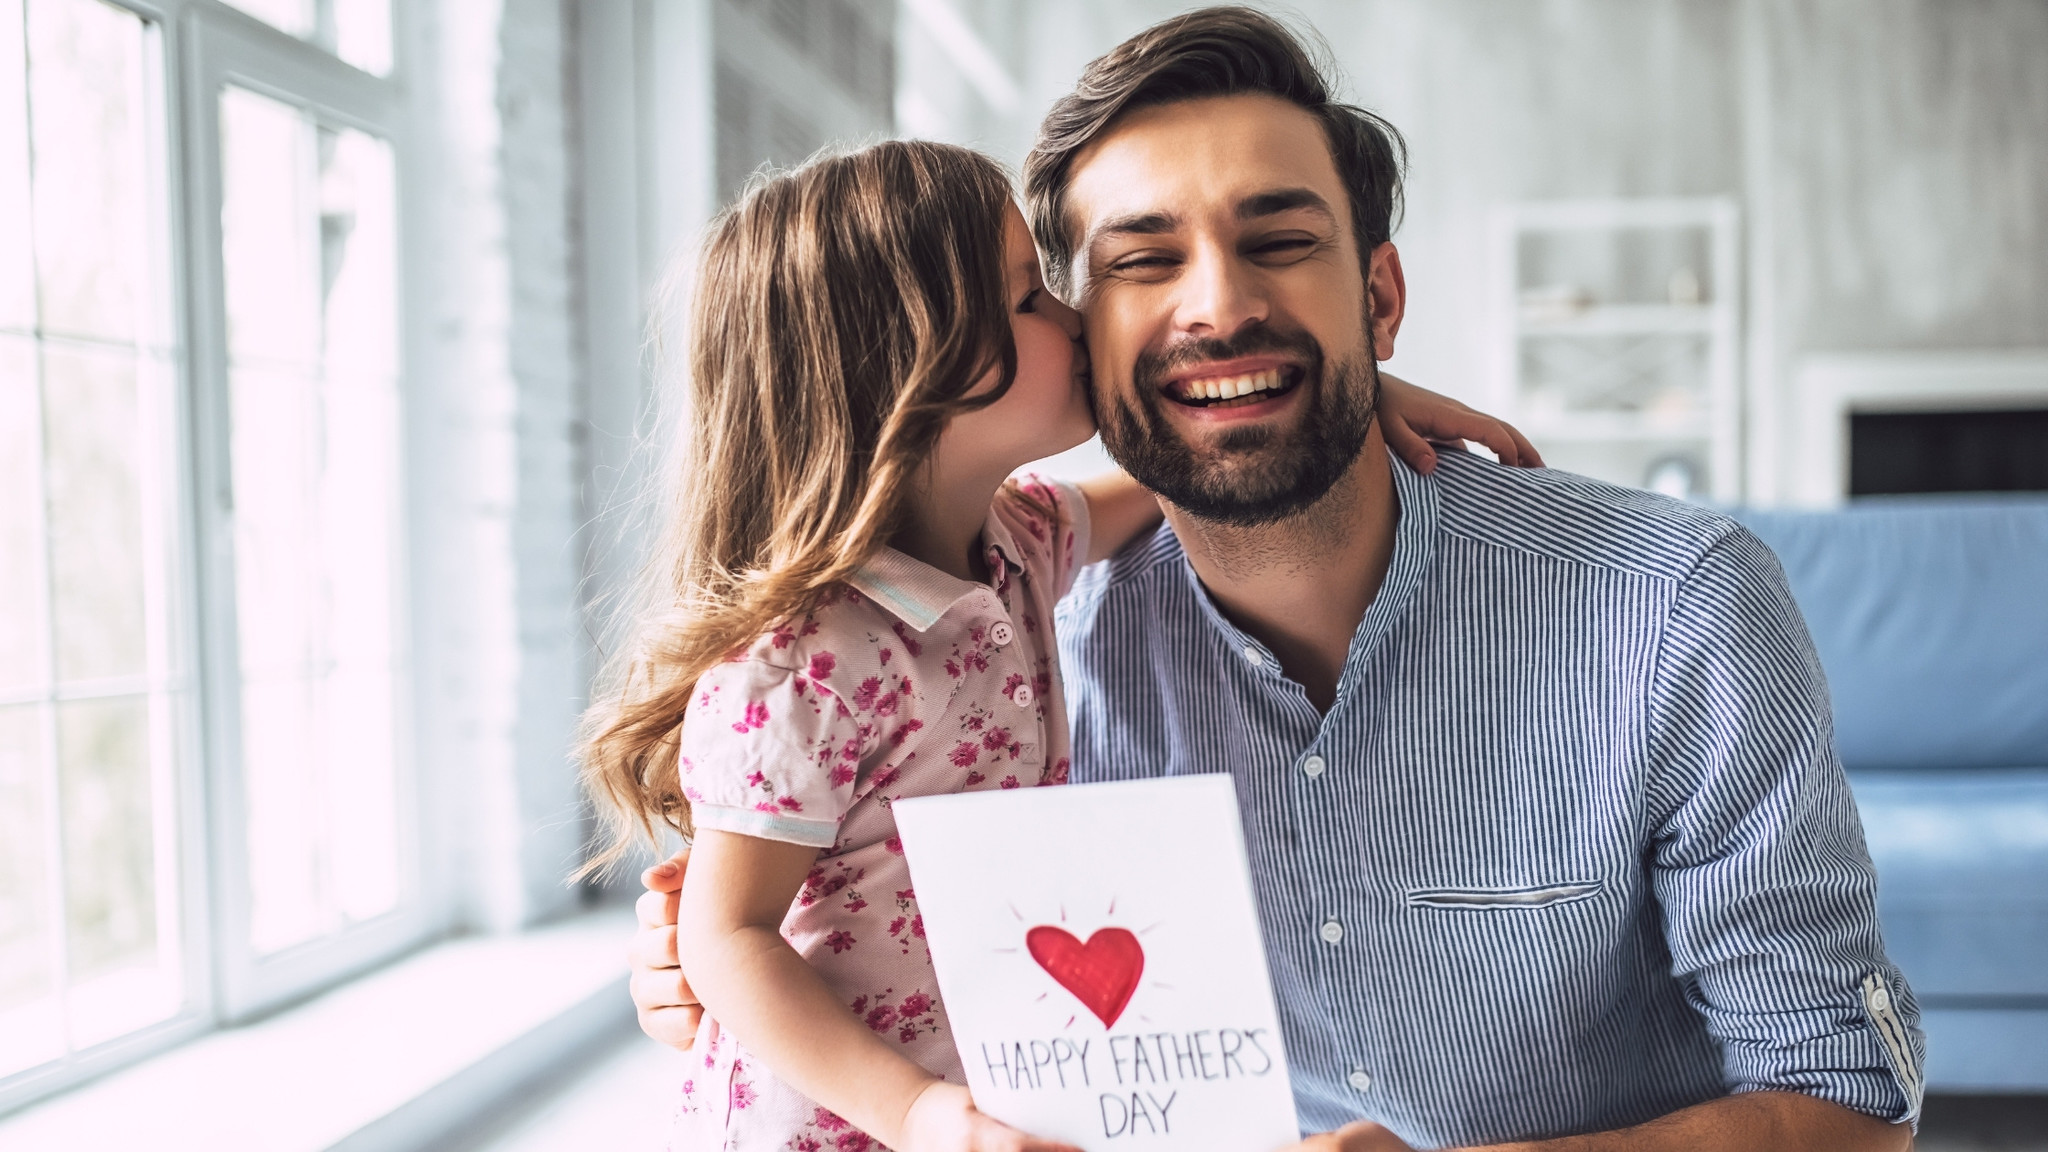 6 Activities To Do with Dad on Father's Day